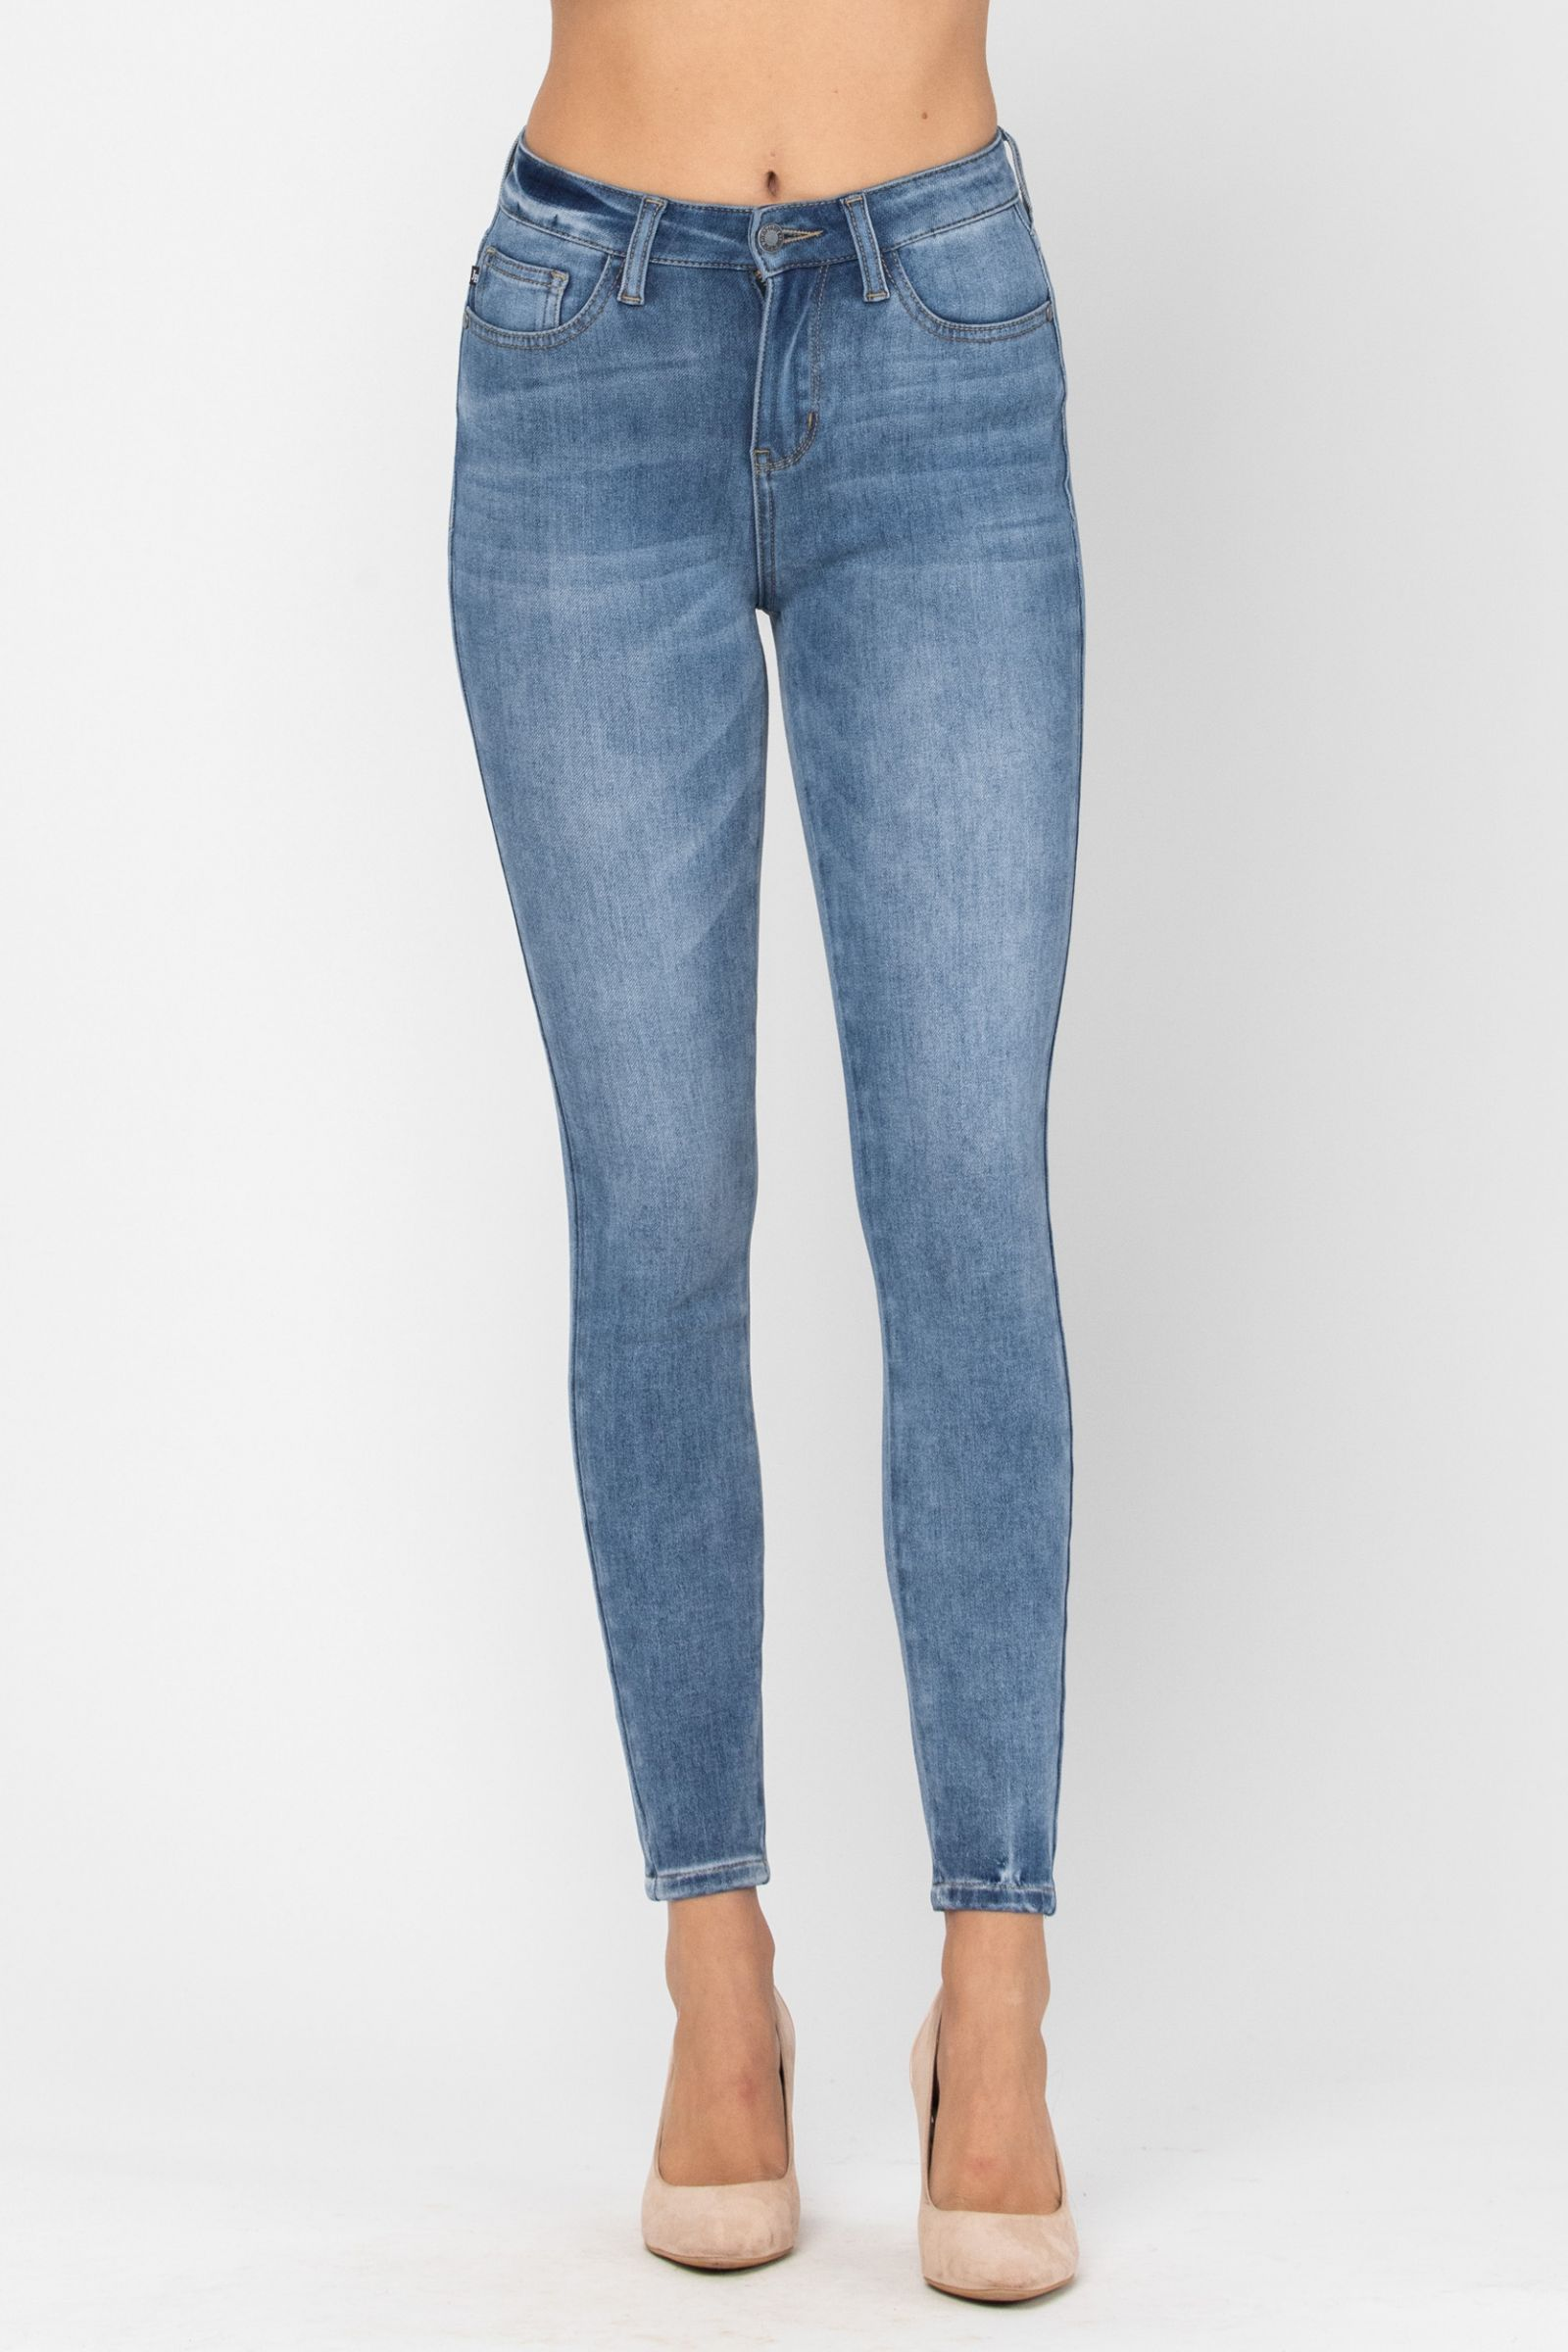 Judy Blue Thermal THERMAdenim Skinny Jeans